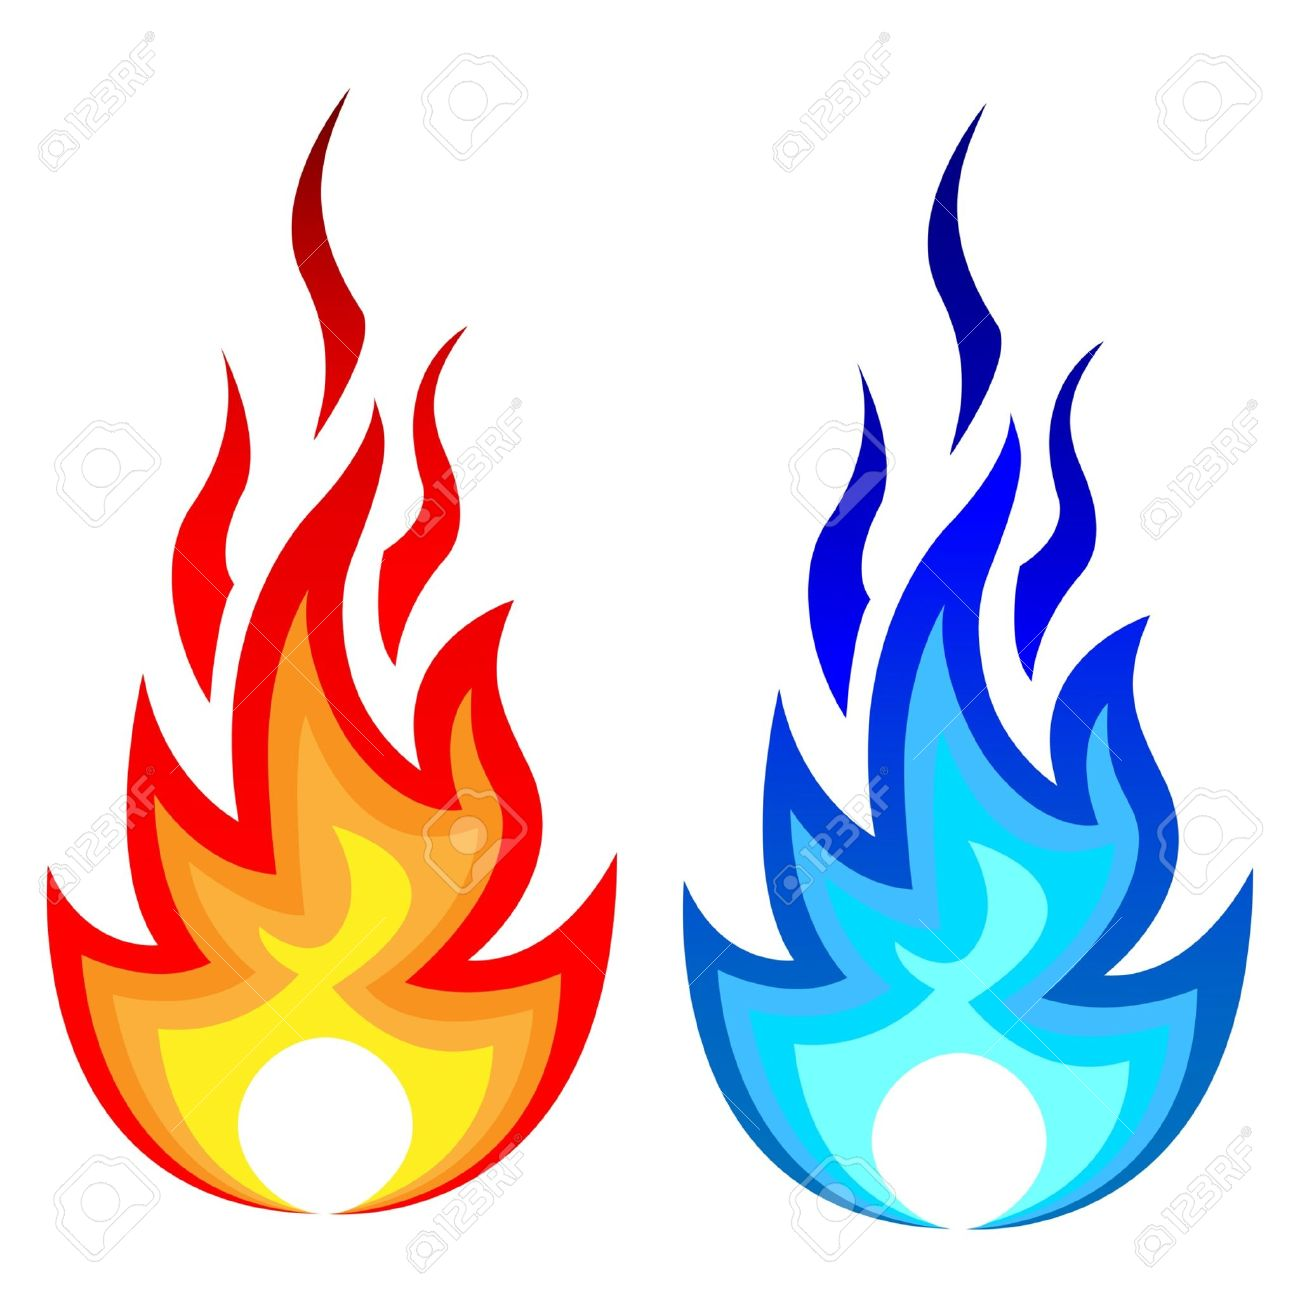 Illustration Of Flame Fire And Gas Flame. Royalty Free Cliparts.